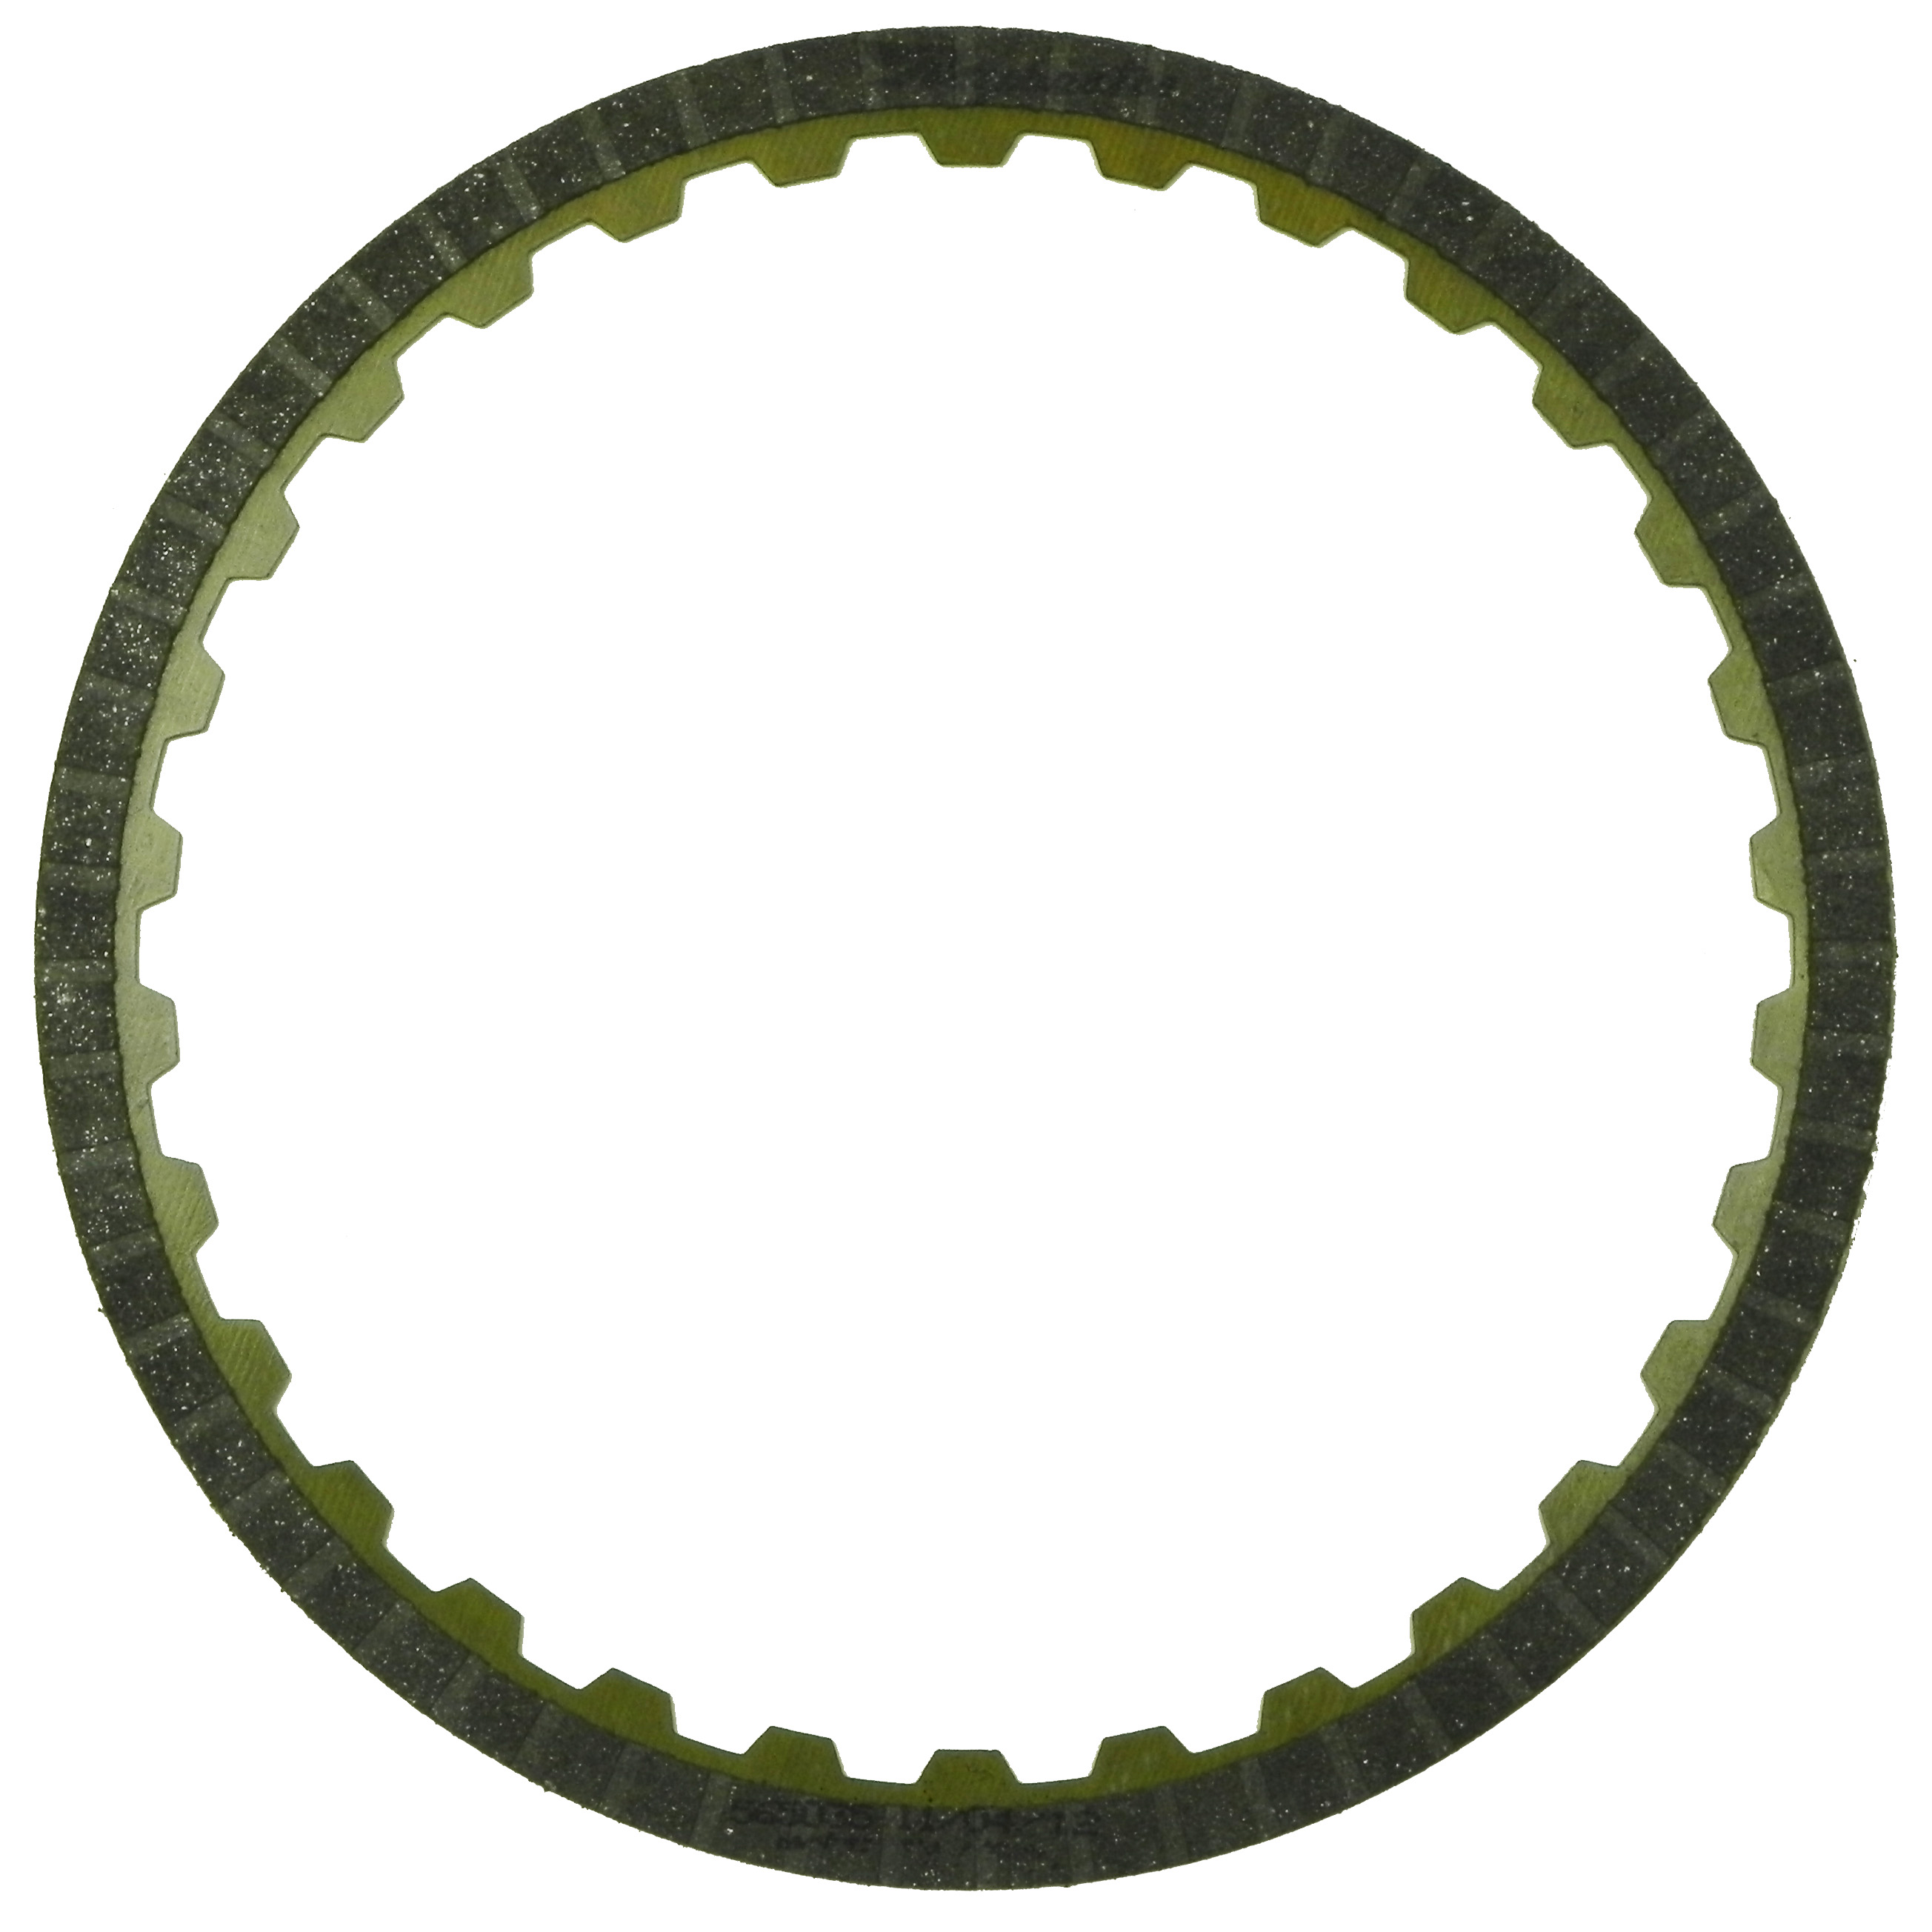 R565035 | 2006-2008 Friction Clutch Plate High Energy Low, Reverse Clutch High Energy